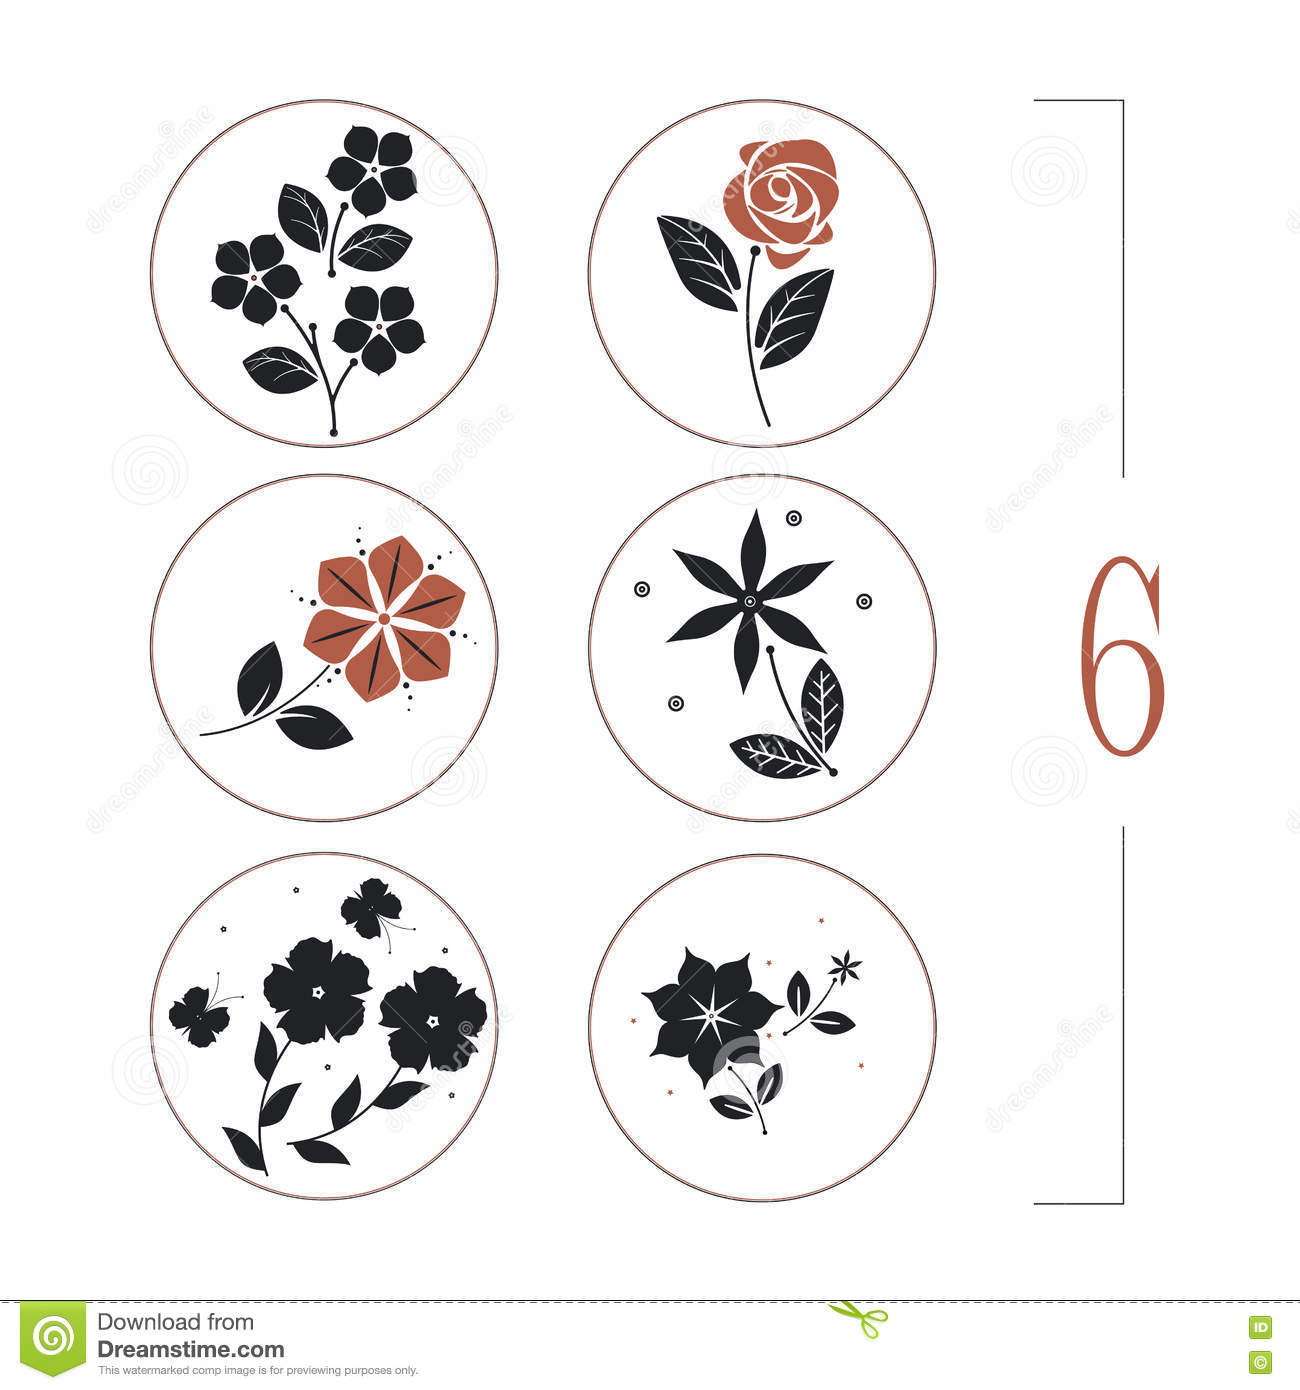 Floral set with flowers, leaves and butterflies silhouettes